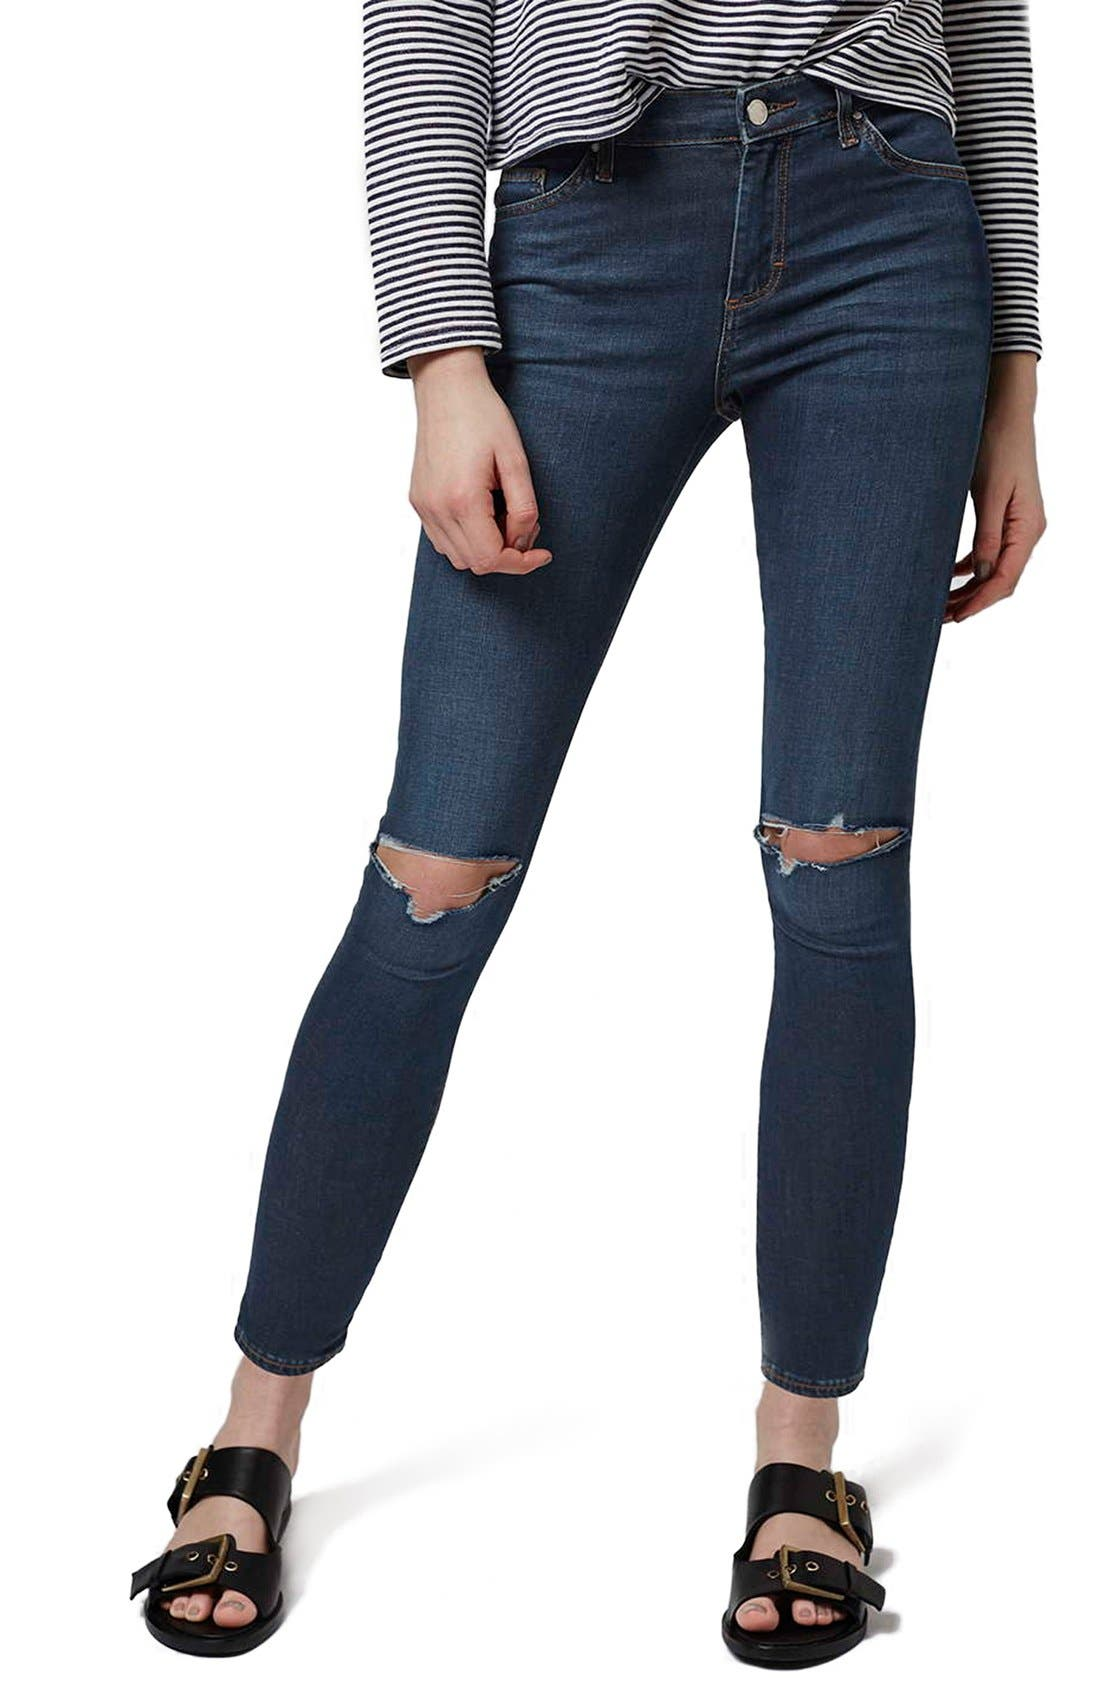 Main Image - Topshop 'Leigh' Vintage Ripped Jeans (Petite)